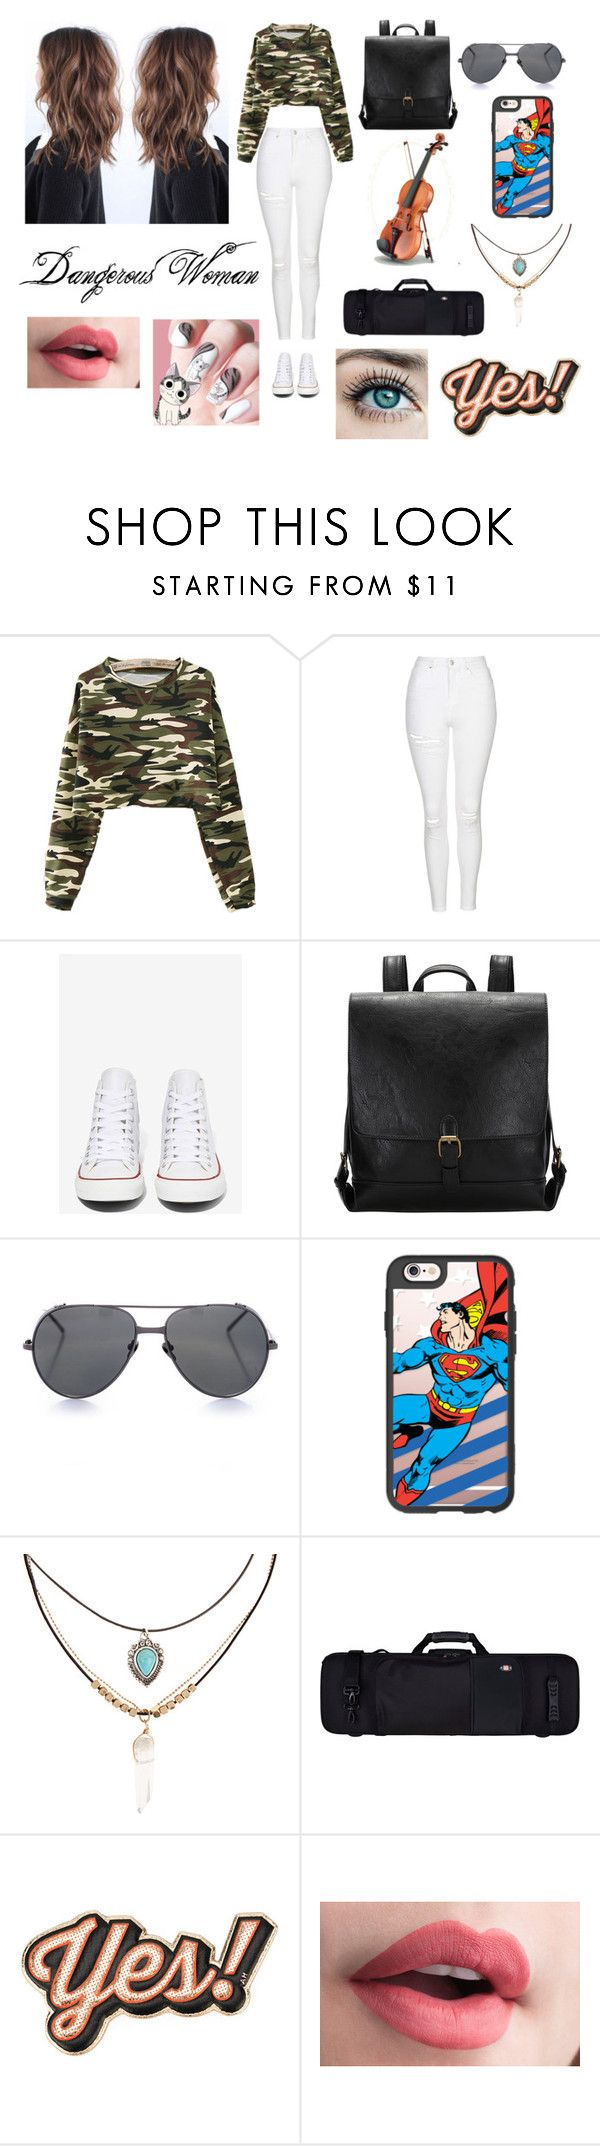 """""""Hi!!"""" by samanthadanetti on Polyvore featuring moda, Topshop, Converse, Linda Farrow, Casetify, Accessorize, Protec y Anya Hindmarch"""